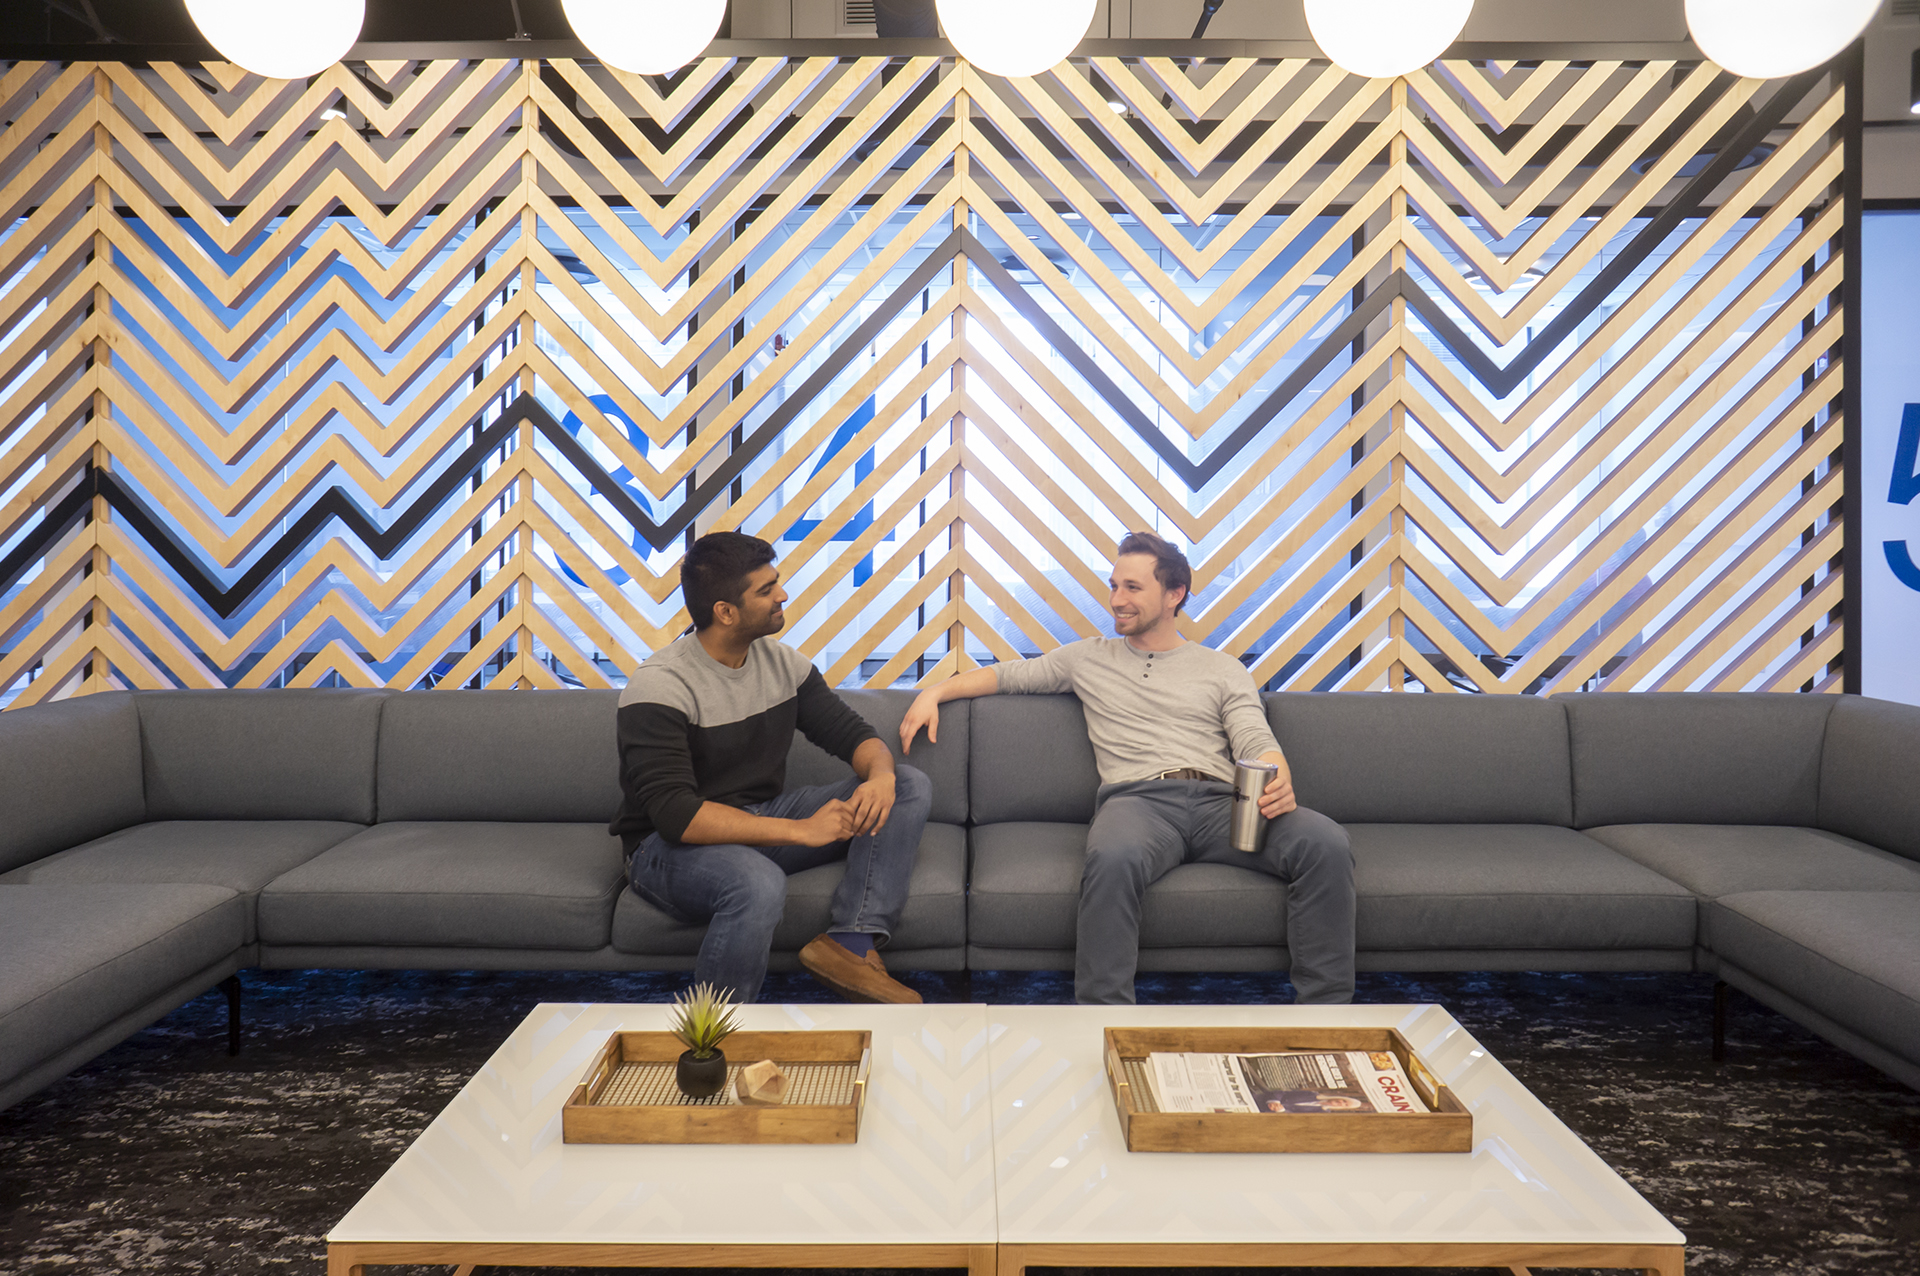 Two people sit and talk on a stylish couch. A zig-zag accent wall is behind them.